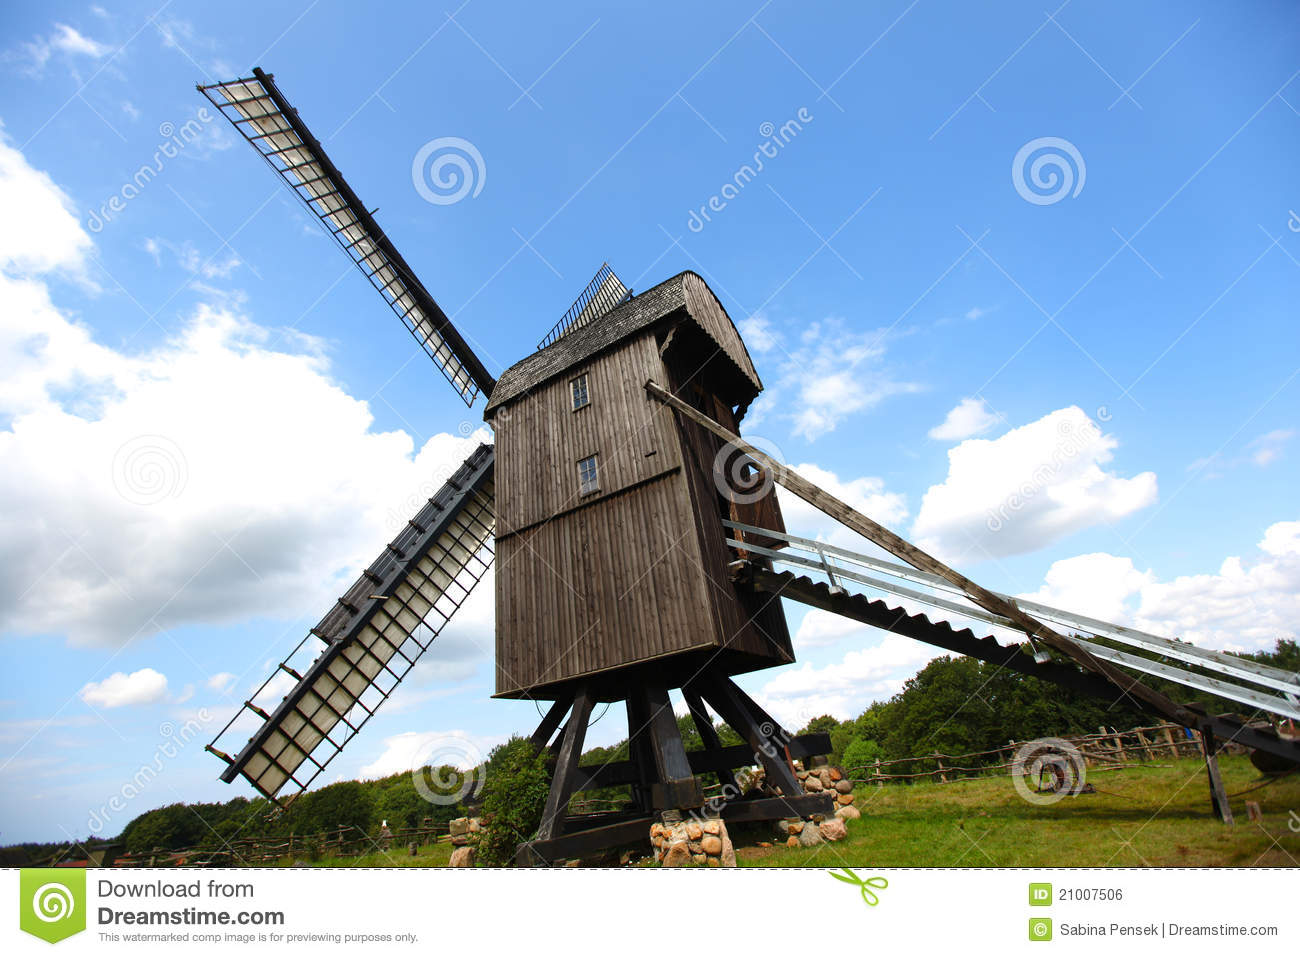 Windmill, Old And Wooden For Milling Grain Royalty Free Stock Image ...